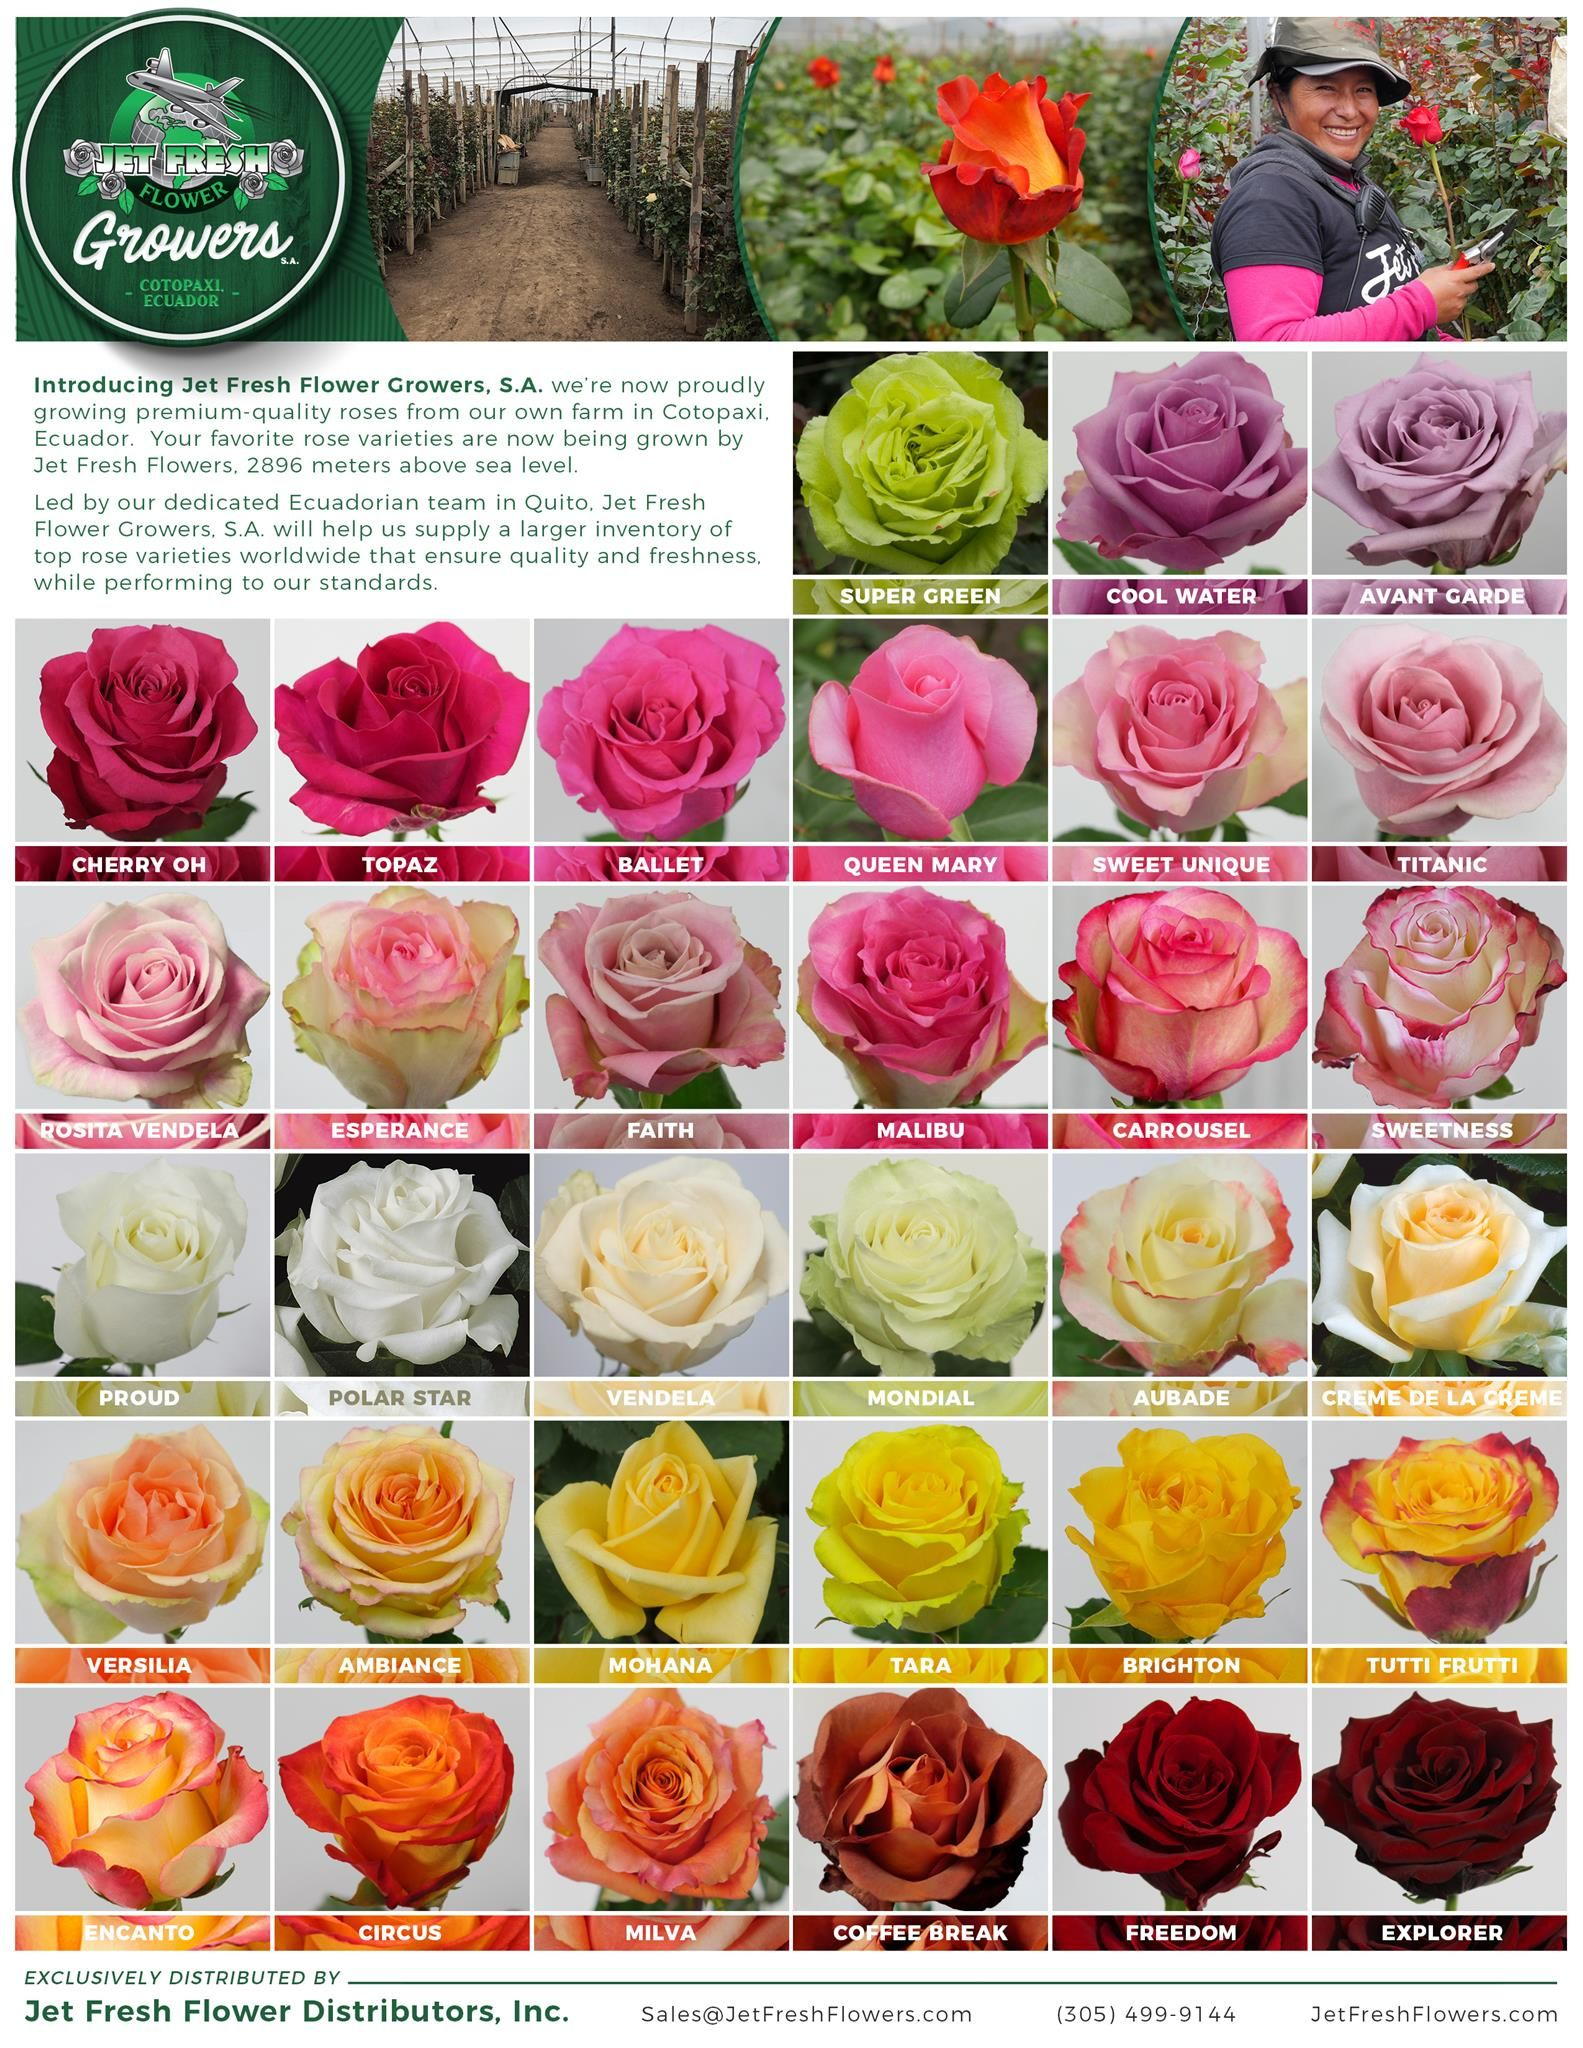 Jetfreshflowers Com Jet Fresh Flower Growers S A Rose Variety Sheet Rose Varieties Beautiful Rose Flowers Types Of Flowers